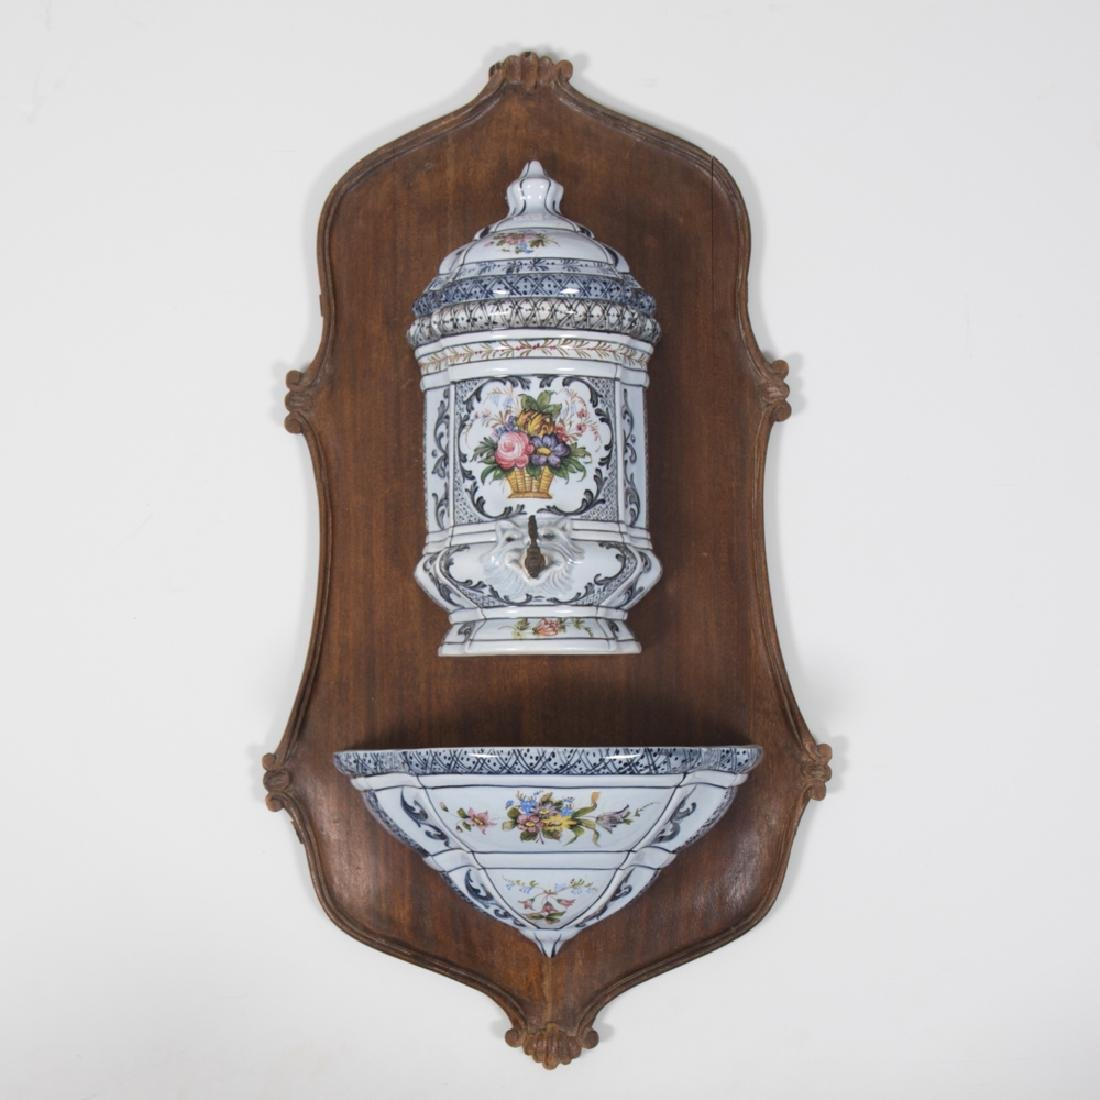 A Continental Porcelain Wall Hanging Lavabo mounted on